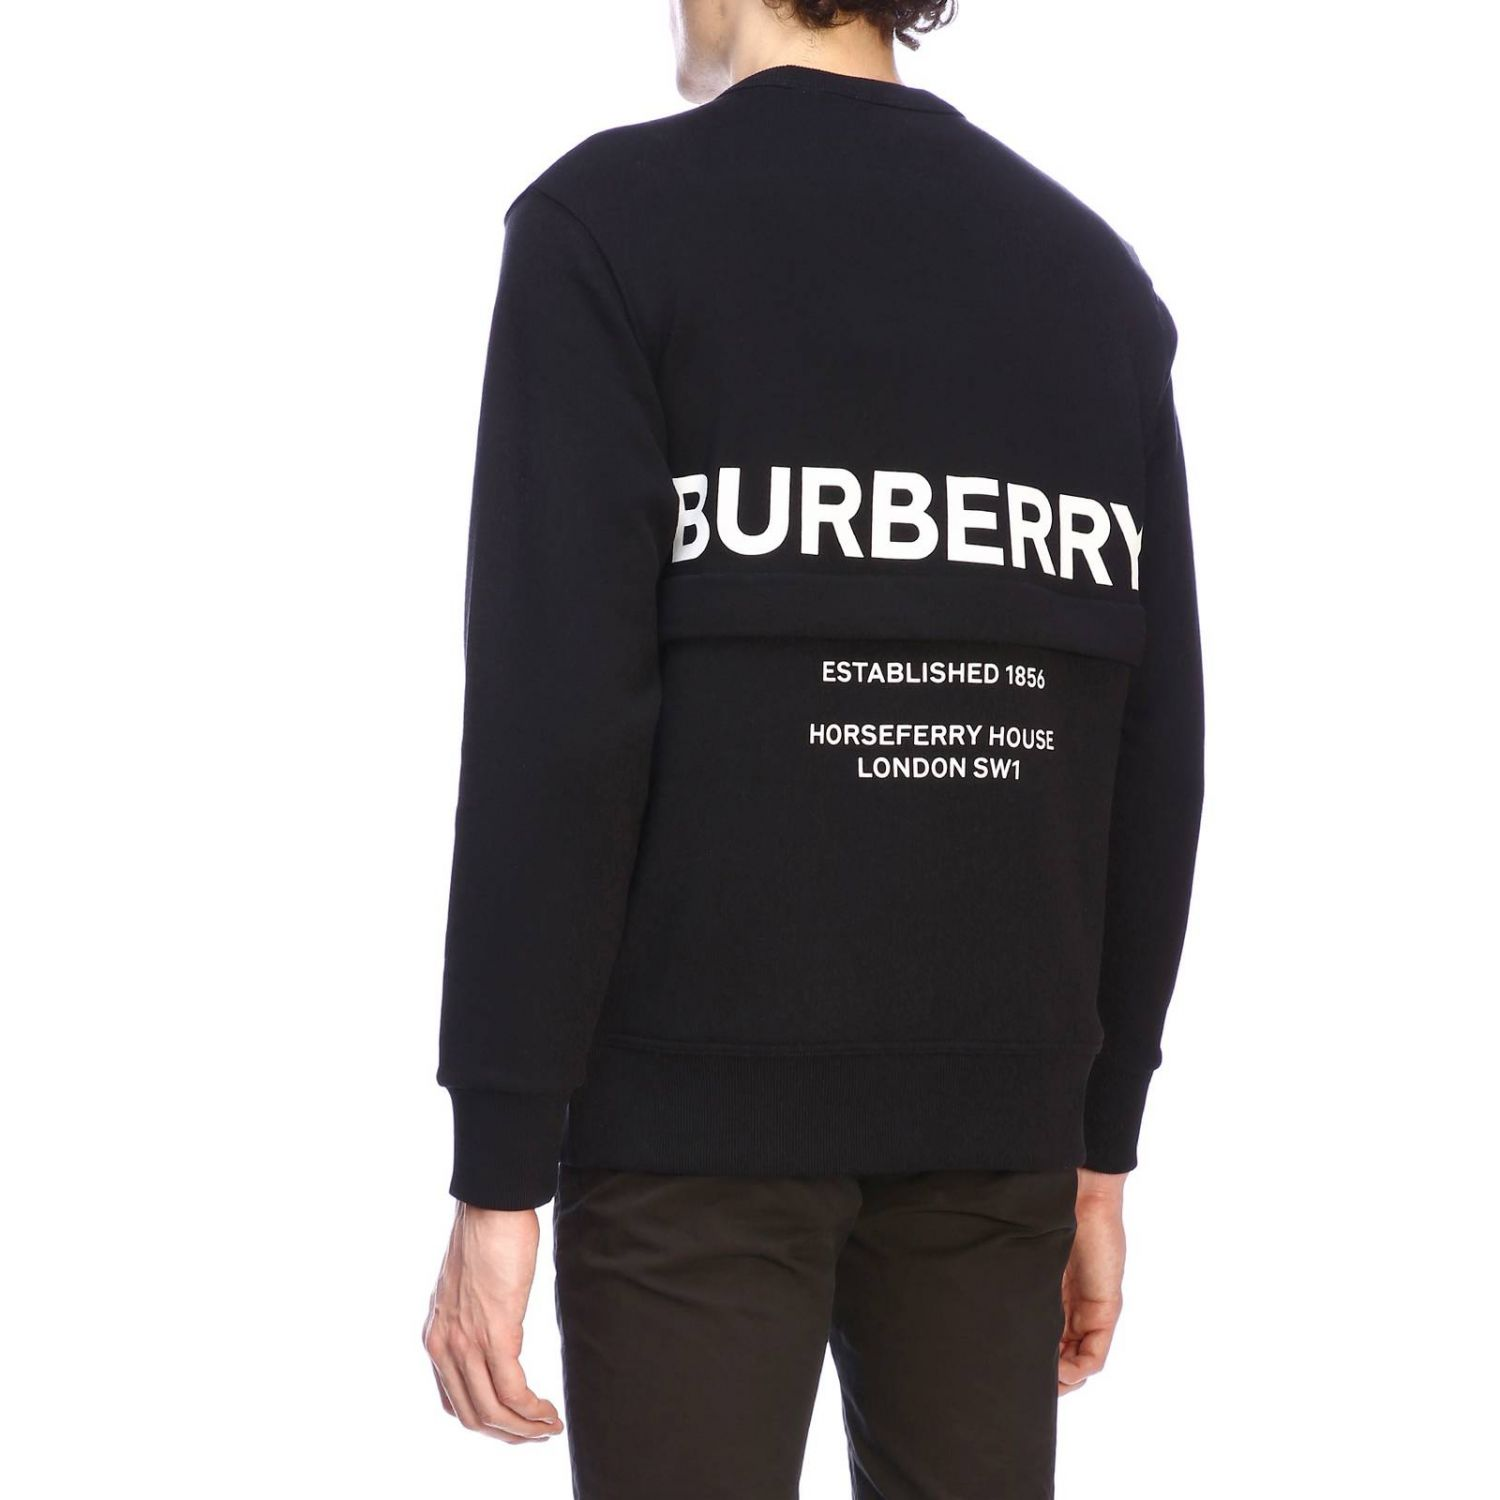 Crewneck sweatshirt with maxi back Burberry lettering and zip black 3